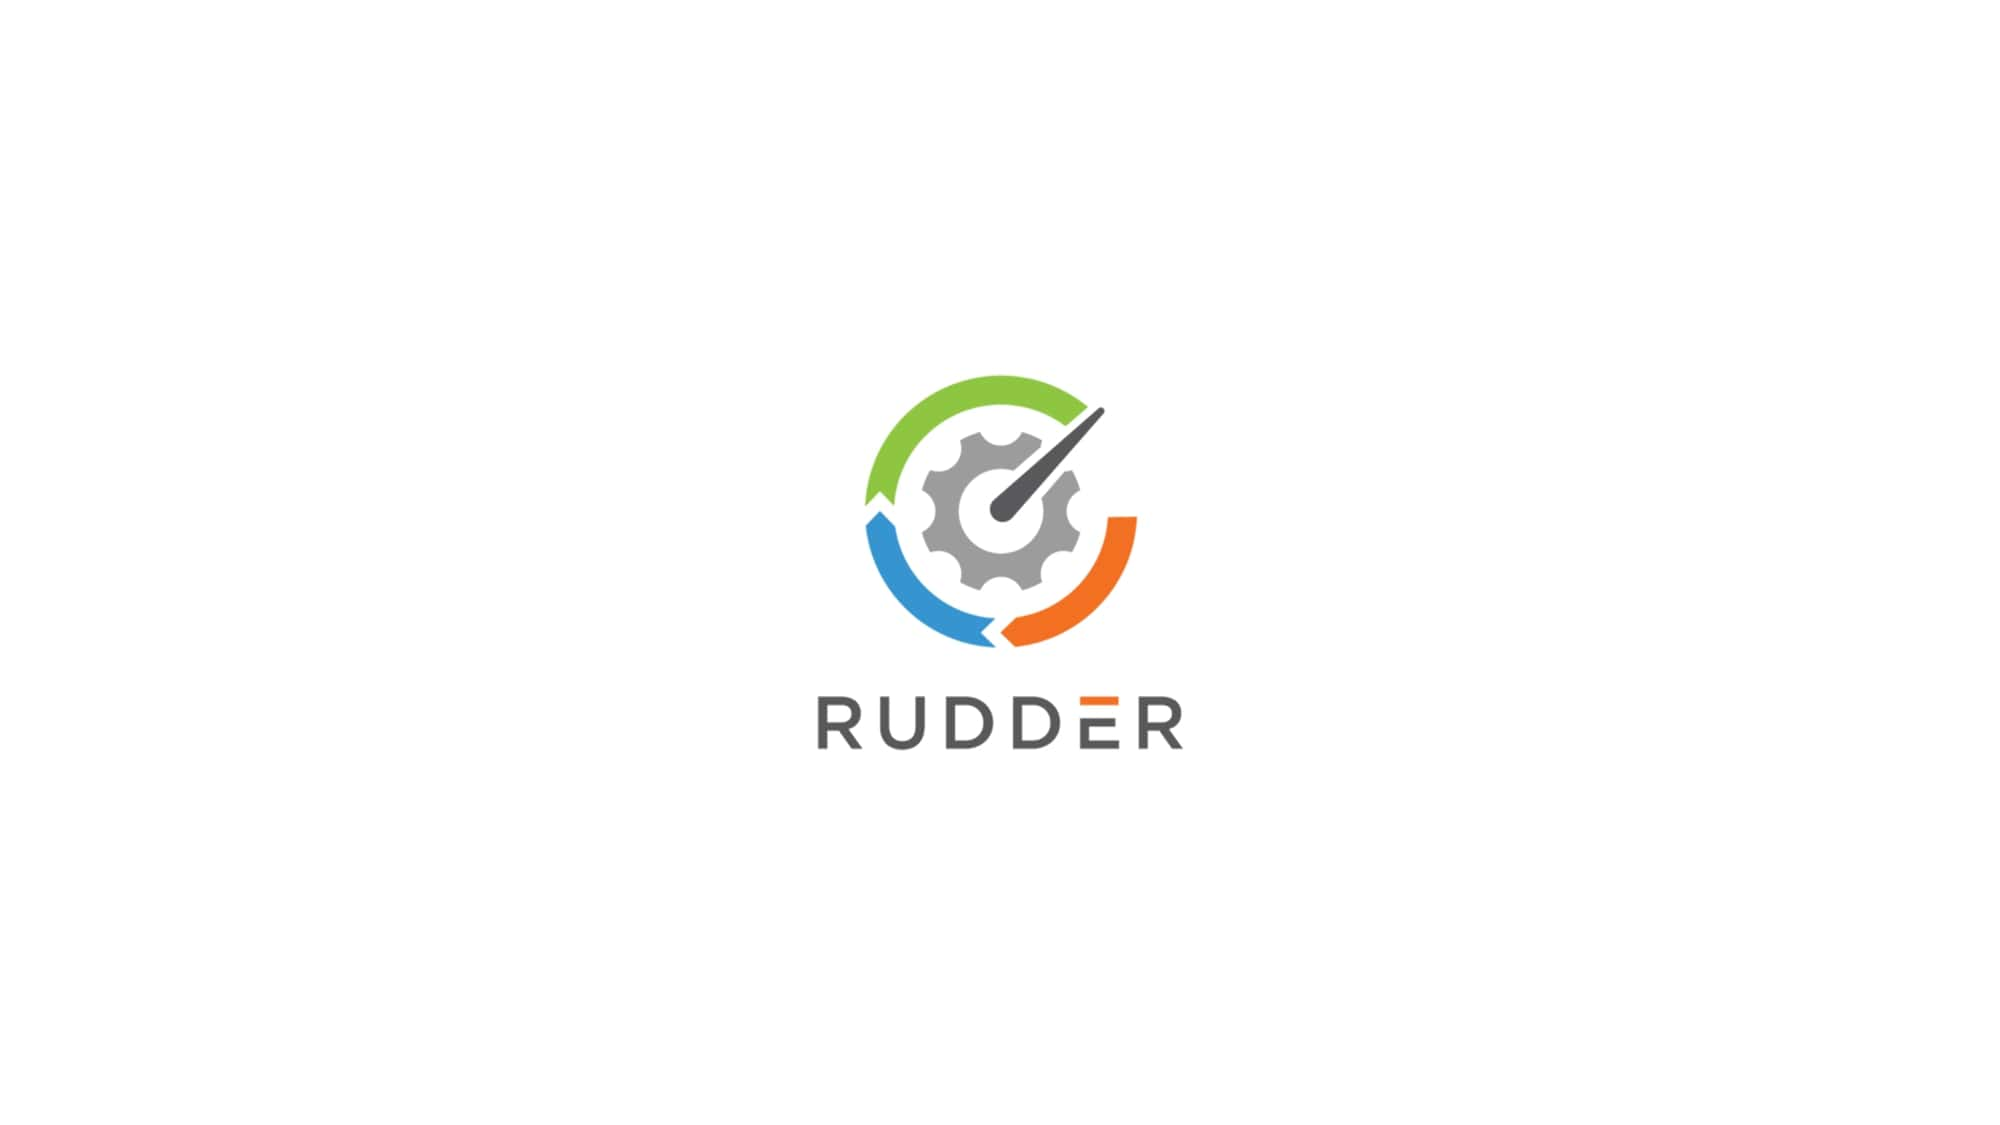 Come installare Rudder System Auditing Tool su Debian 10 Buster